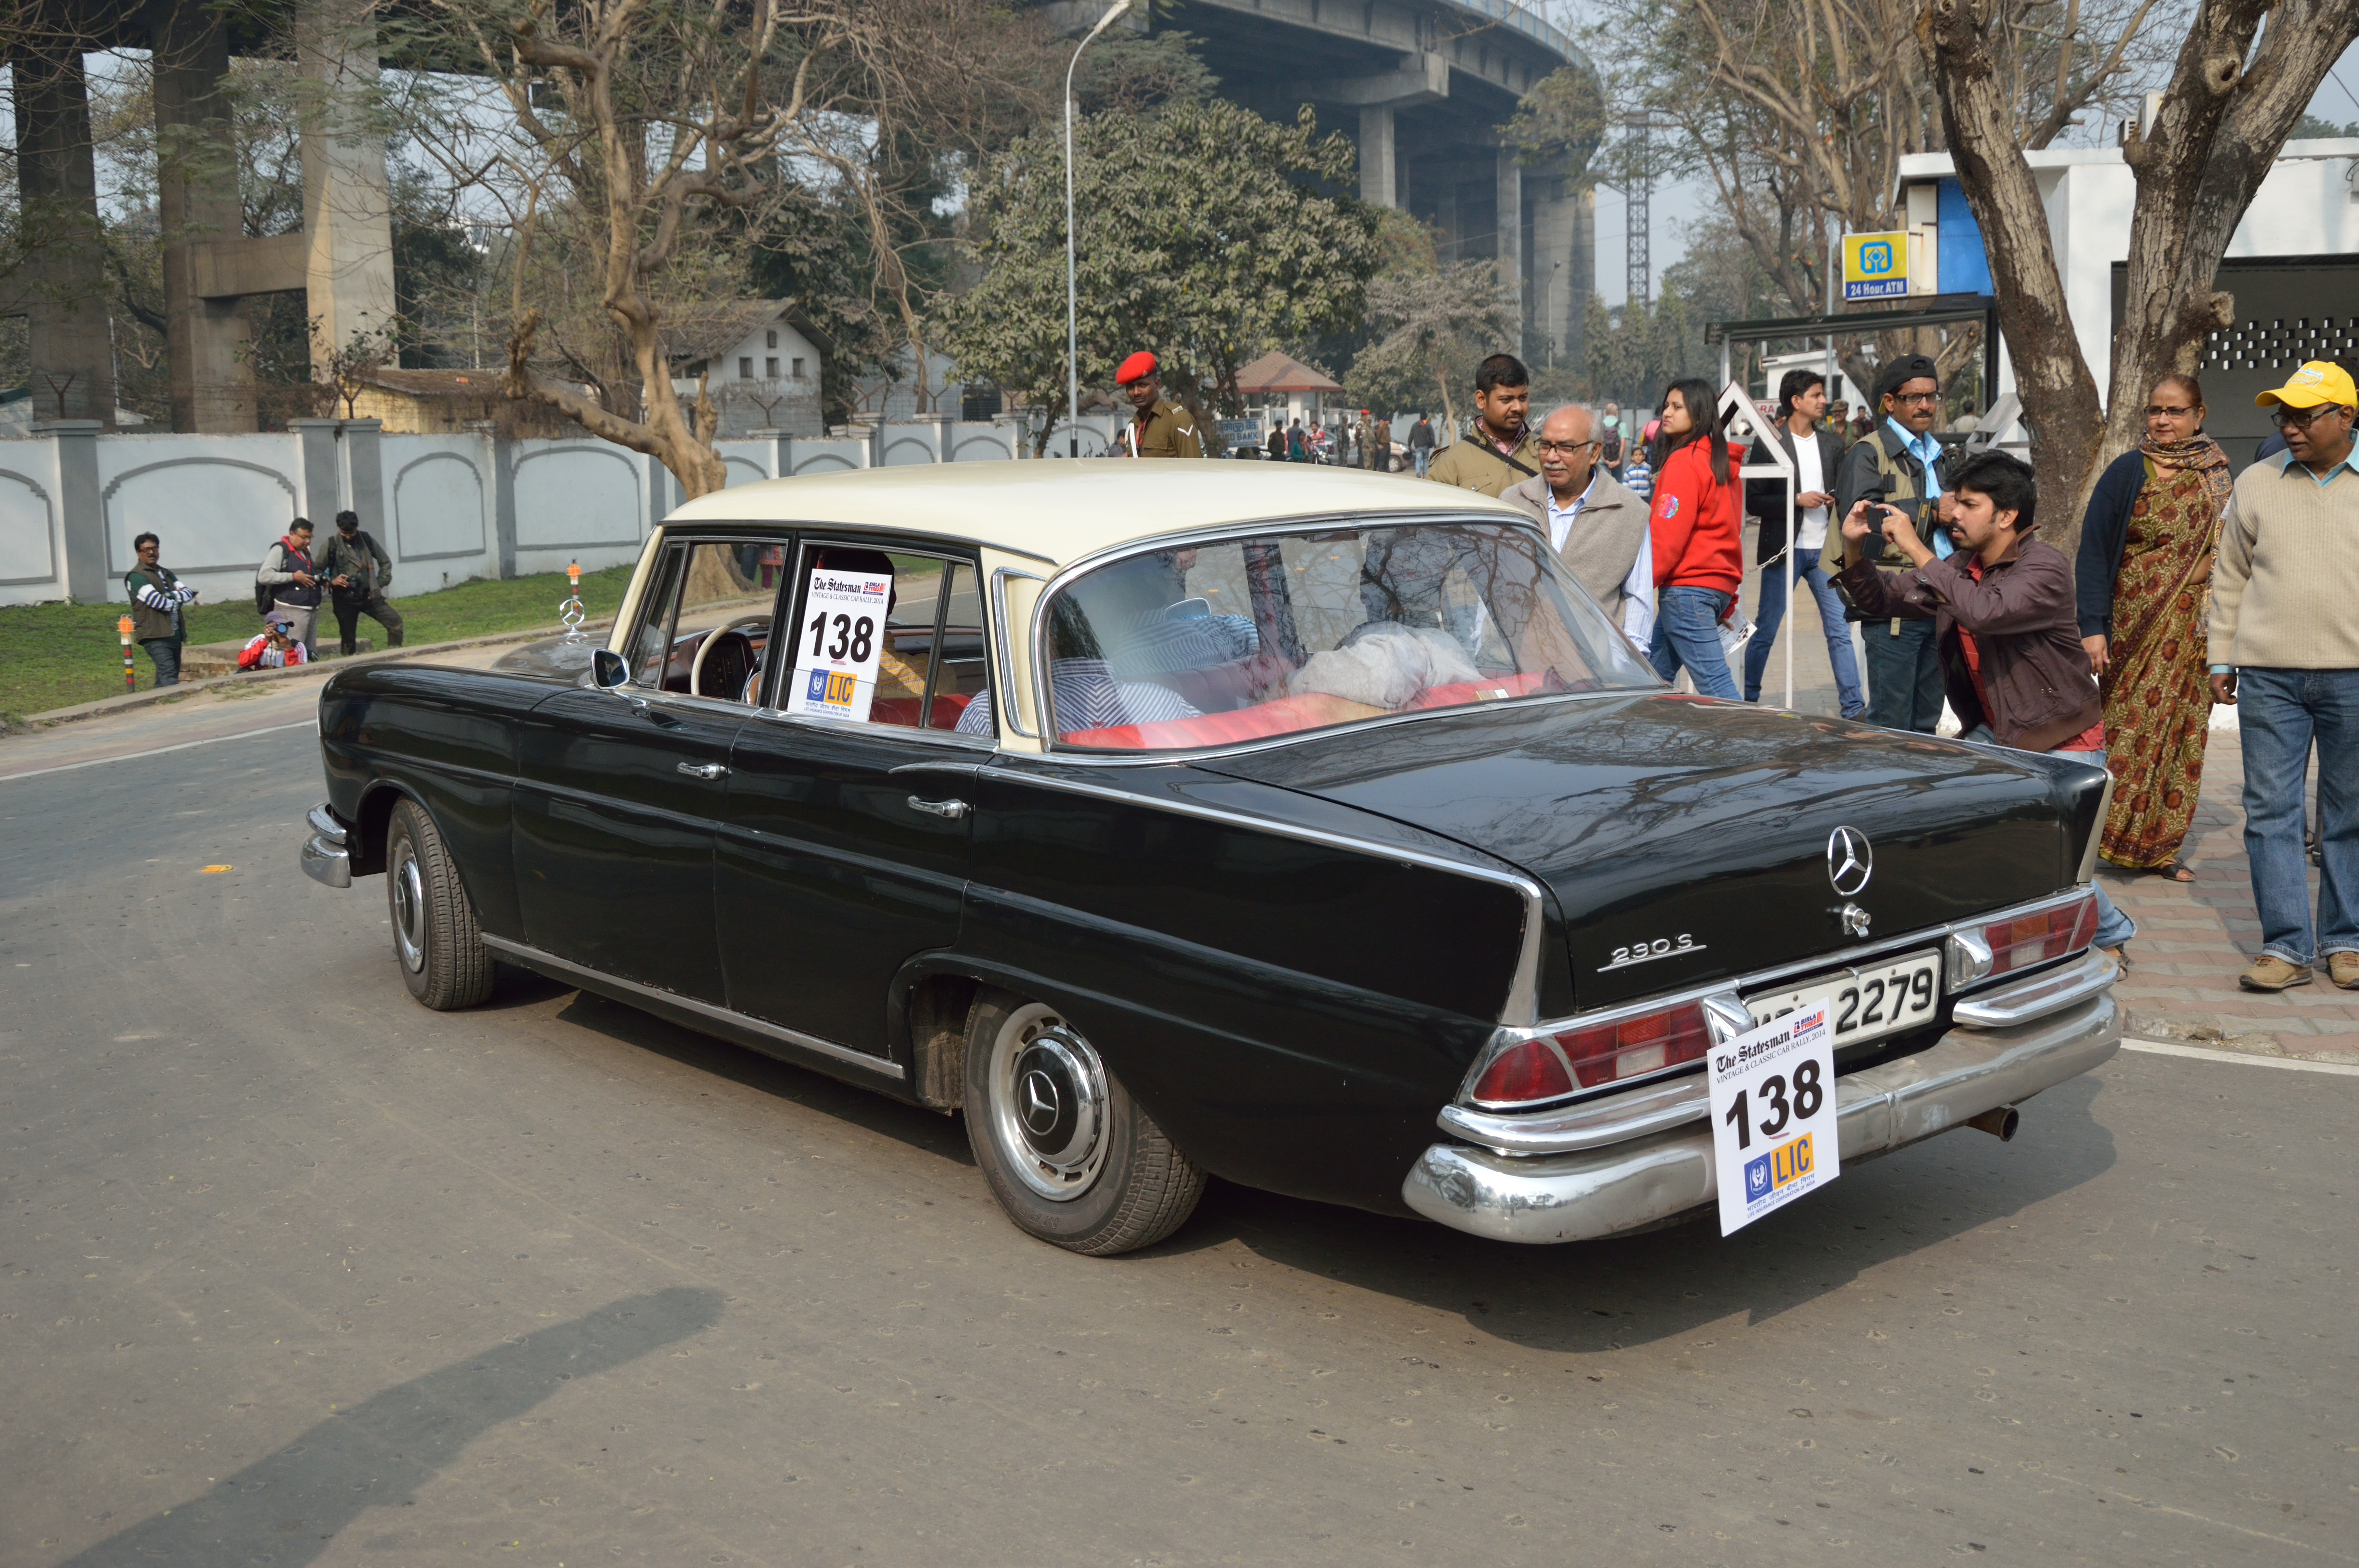 File Mercedes Benz 230 S 1967 2306 cc 6 cyl MSL 2279